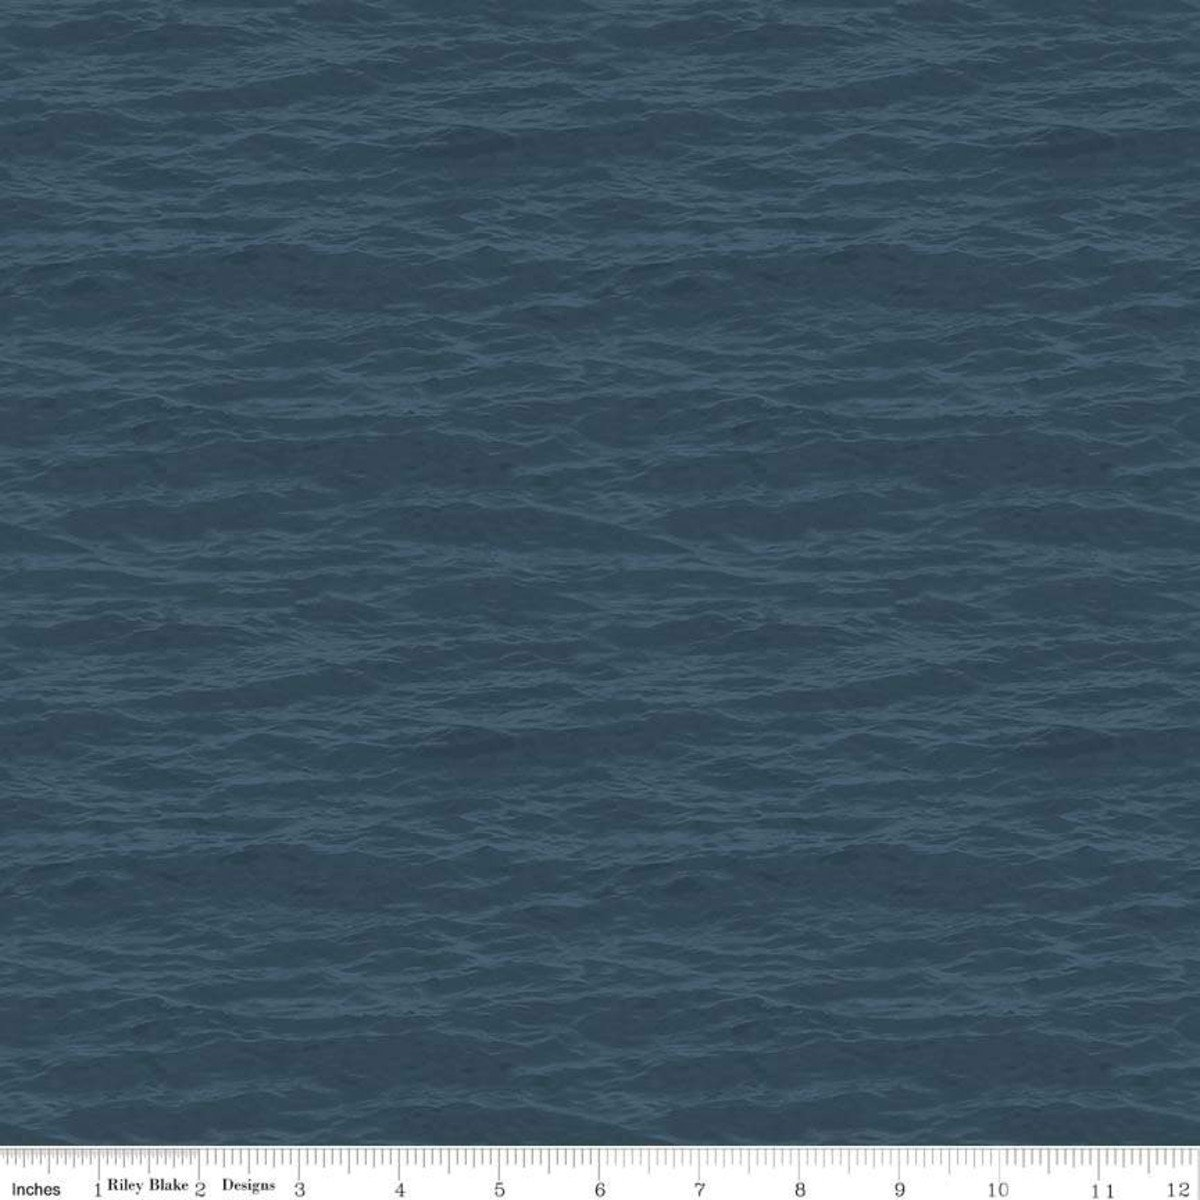 Dark Teal Water - Fish and Fowl - C8731-DKTEAL